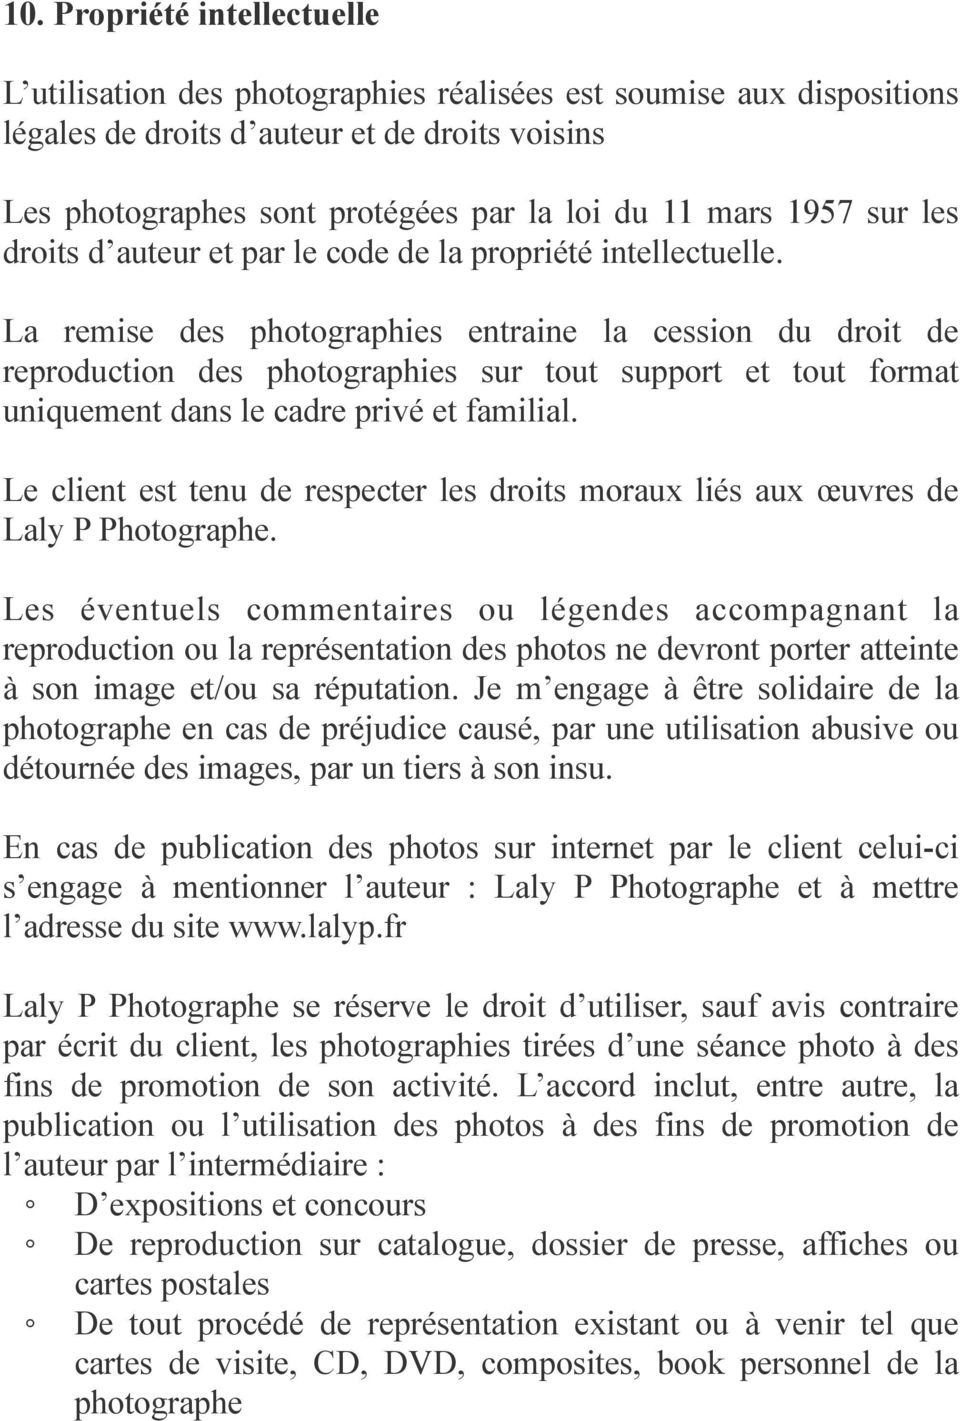 La remise des photographies entraine la cession du droit de reproduction des photographies sur tout support et tout format uniquement dans le cadre privé et familial.